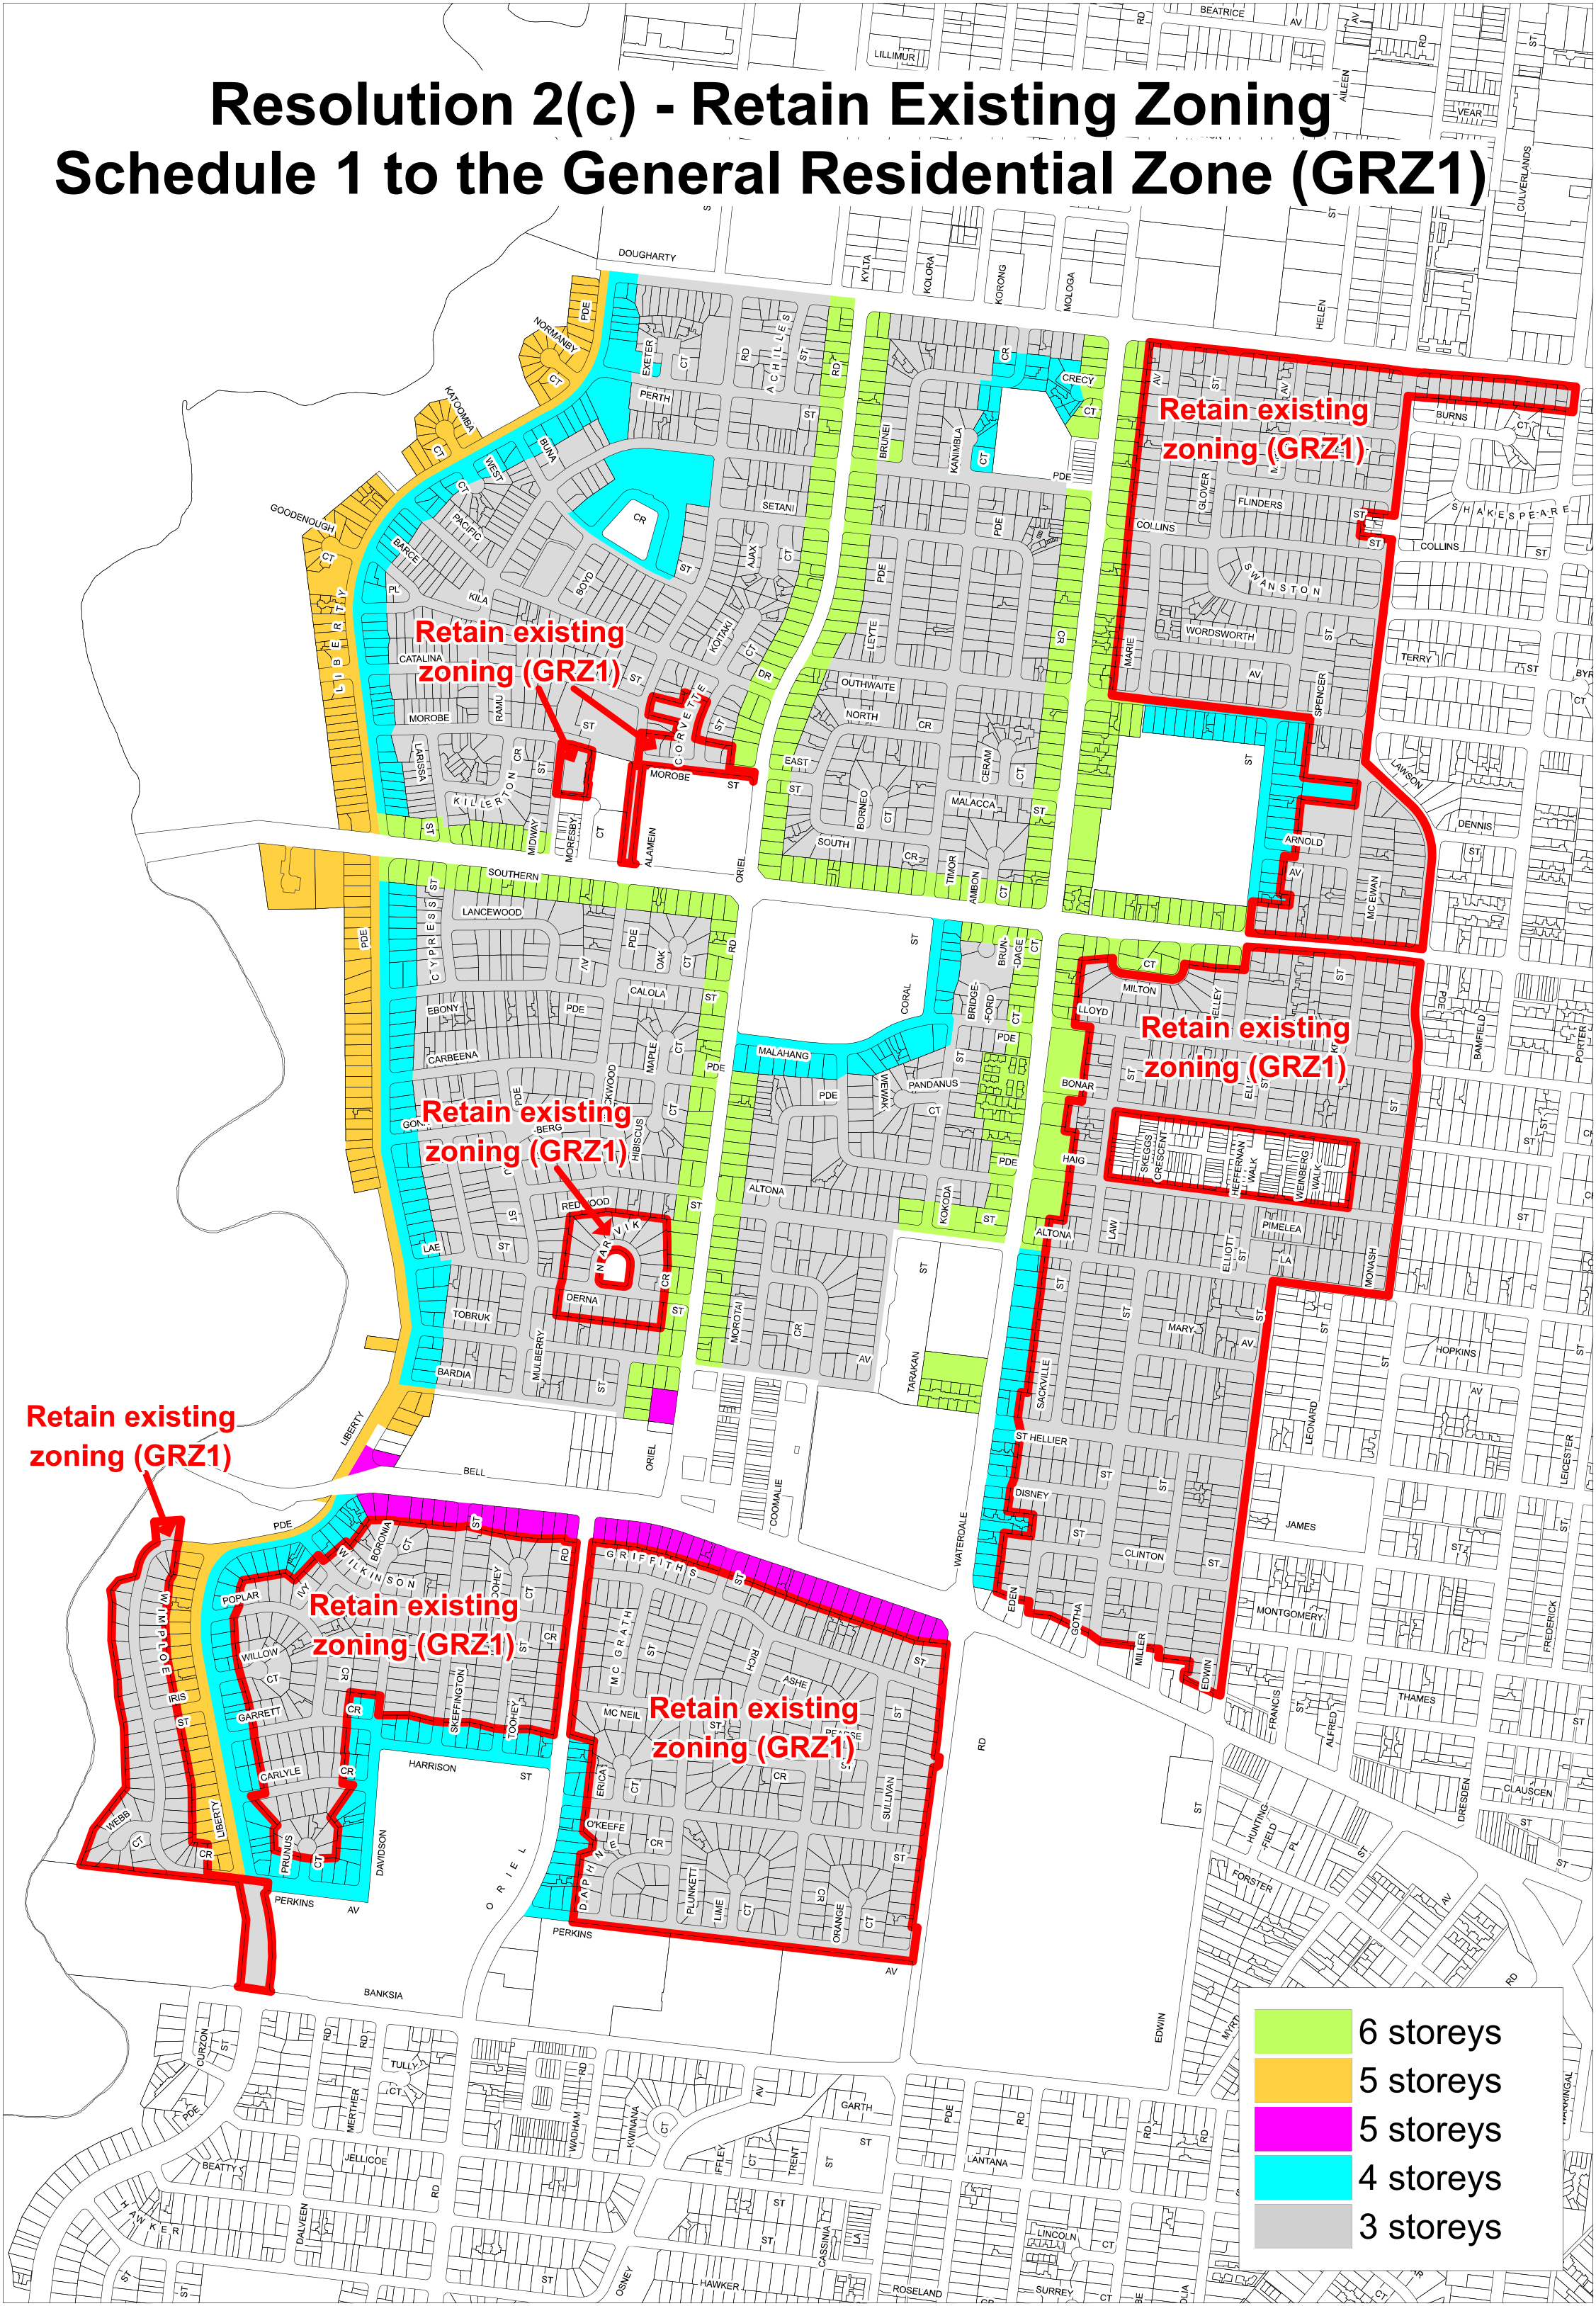 Map 1 - Retain Existing Zoning